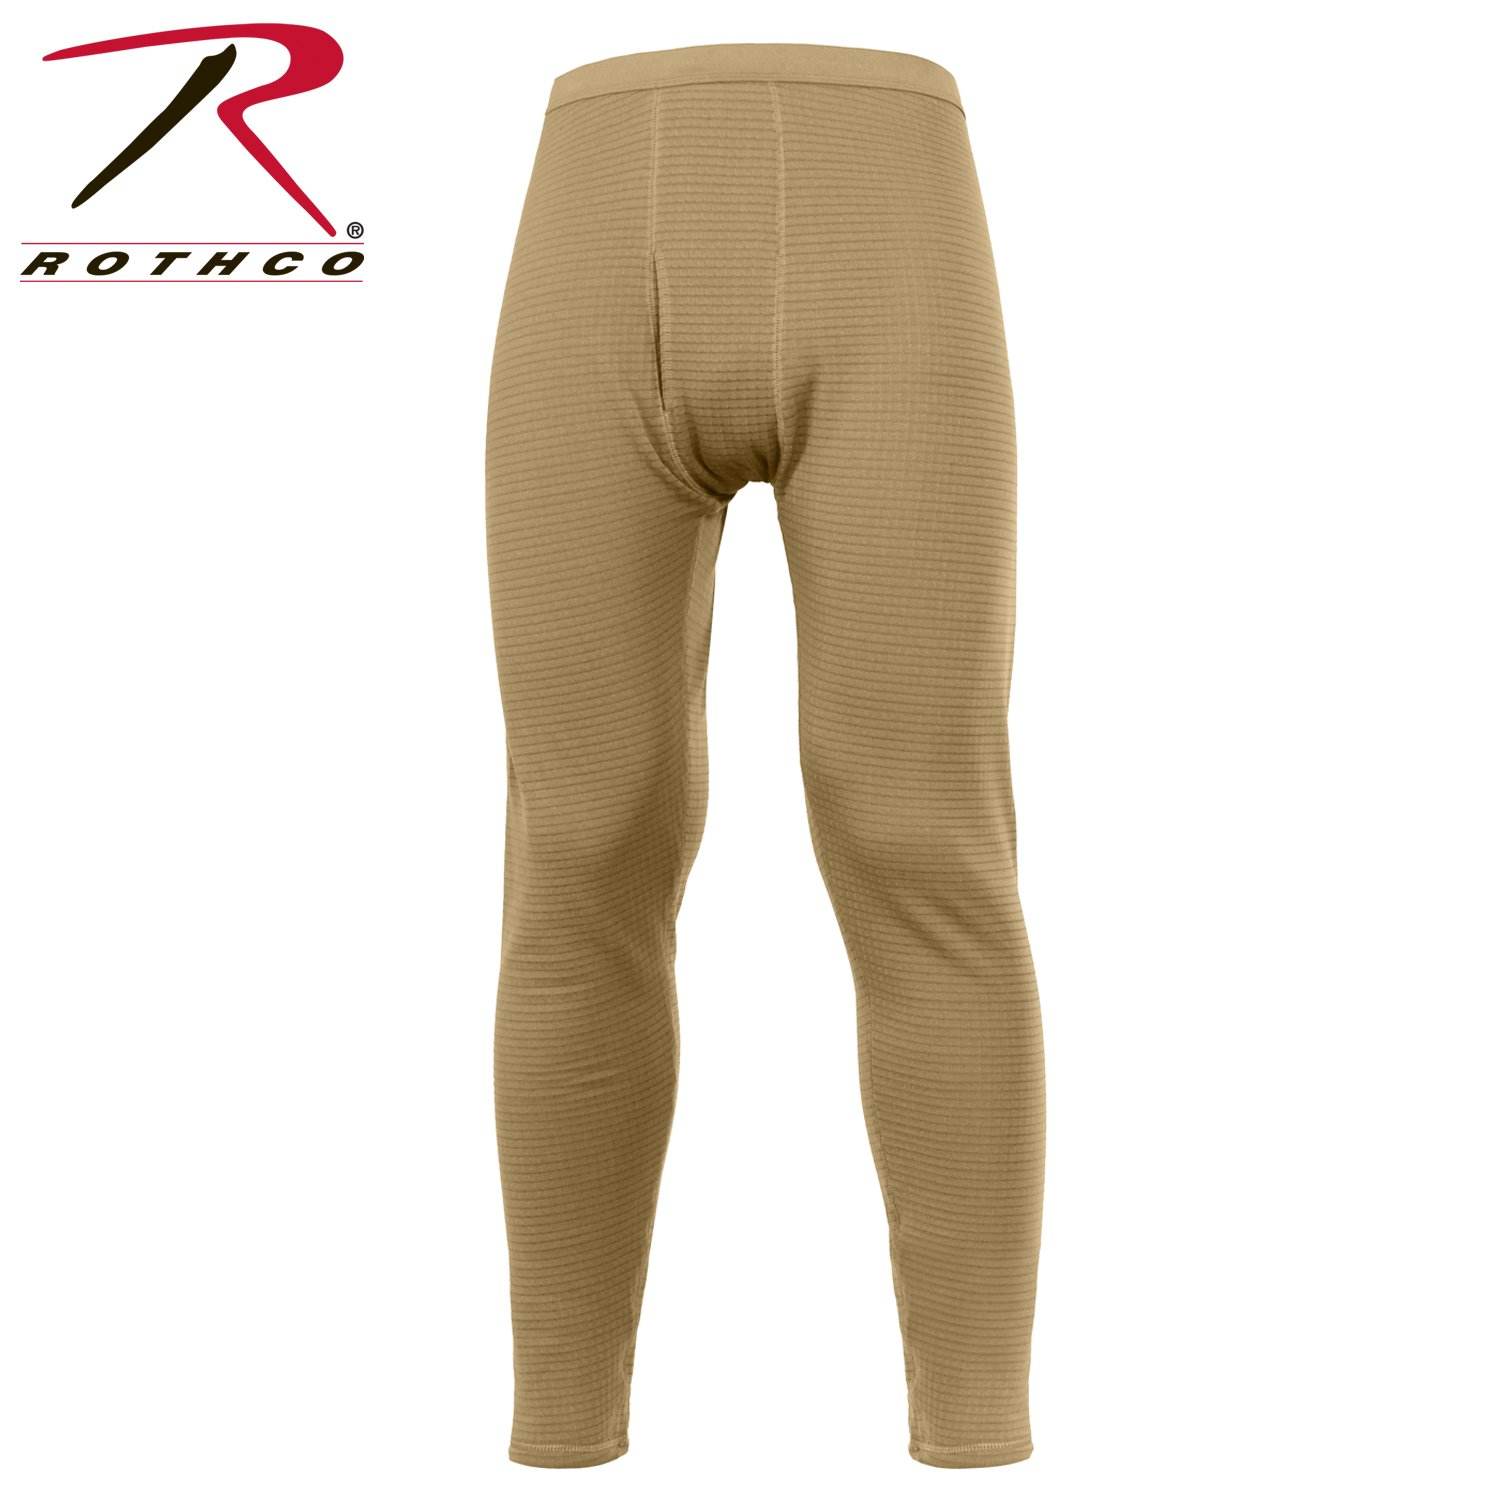 Rothco Gen III Level II Underwear Bottoms RSR Group Inc 69034LRG